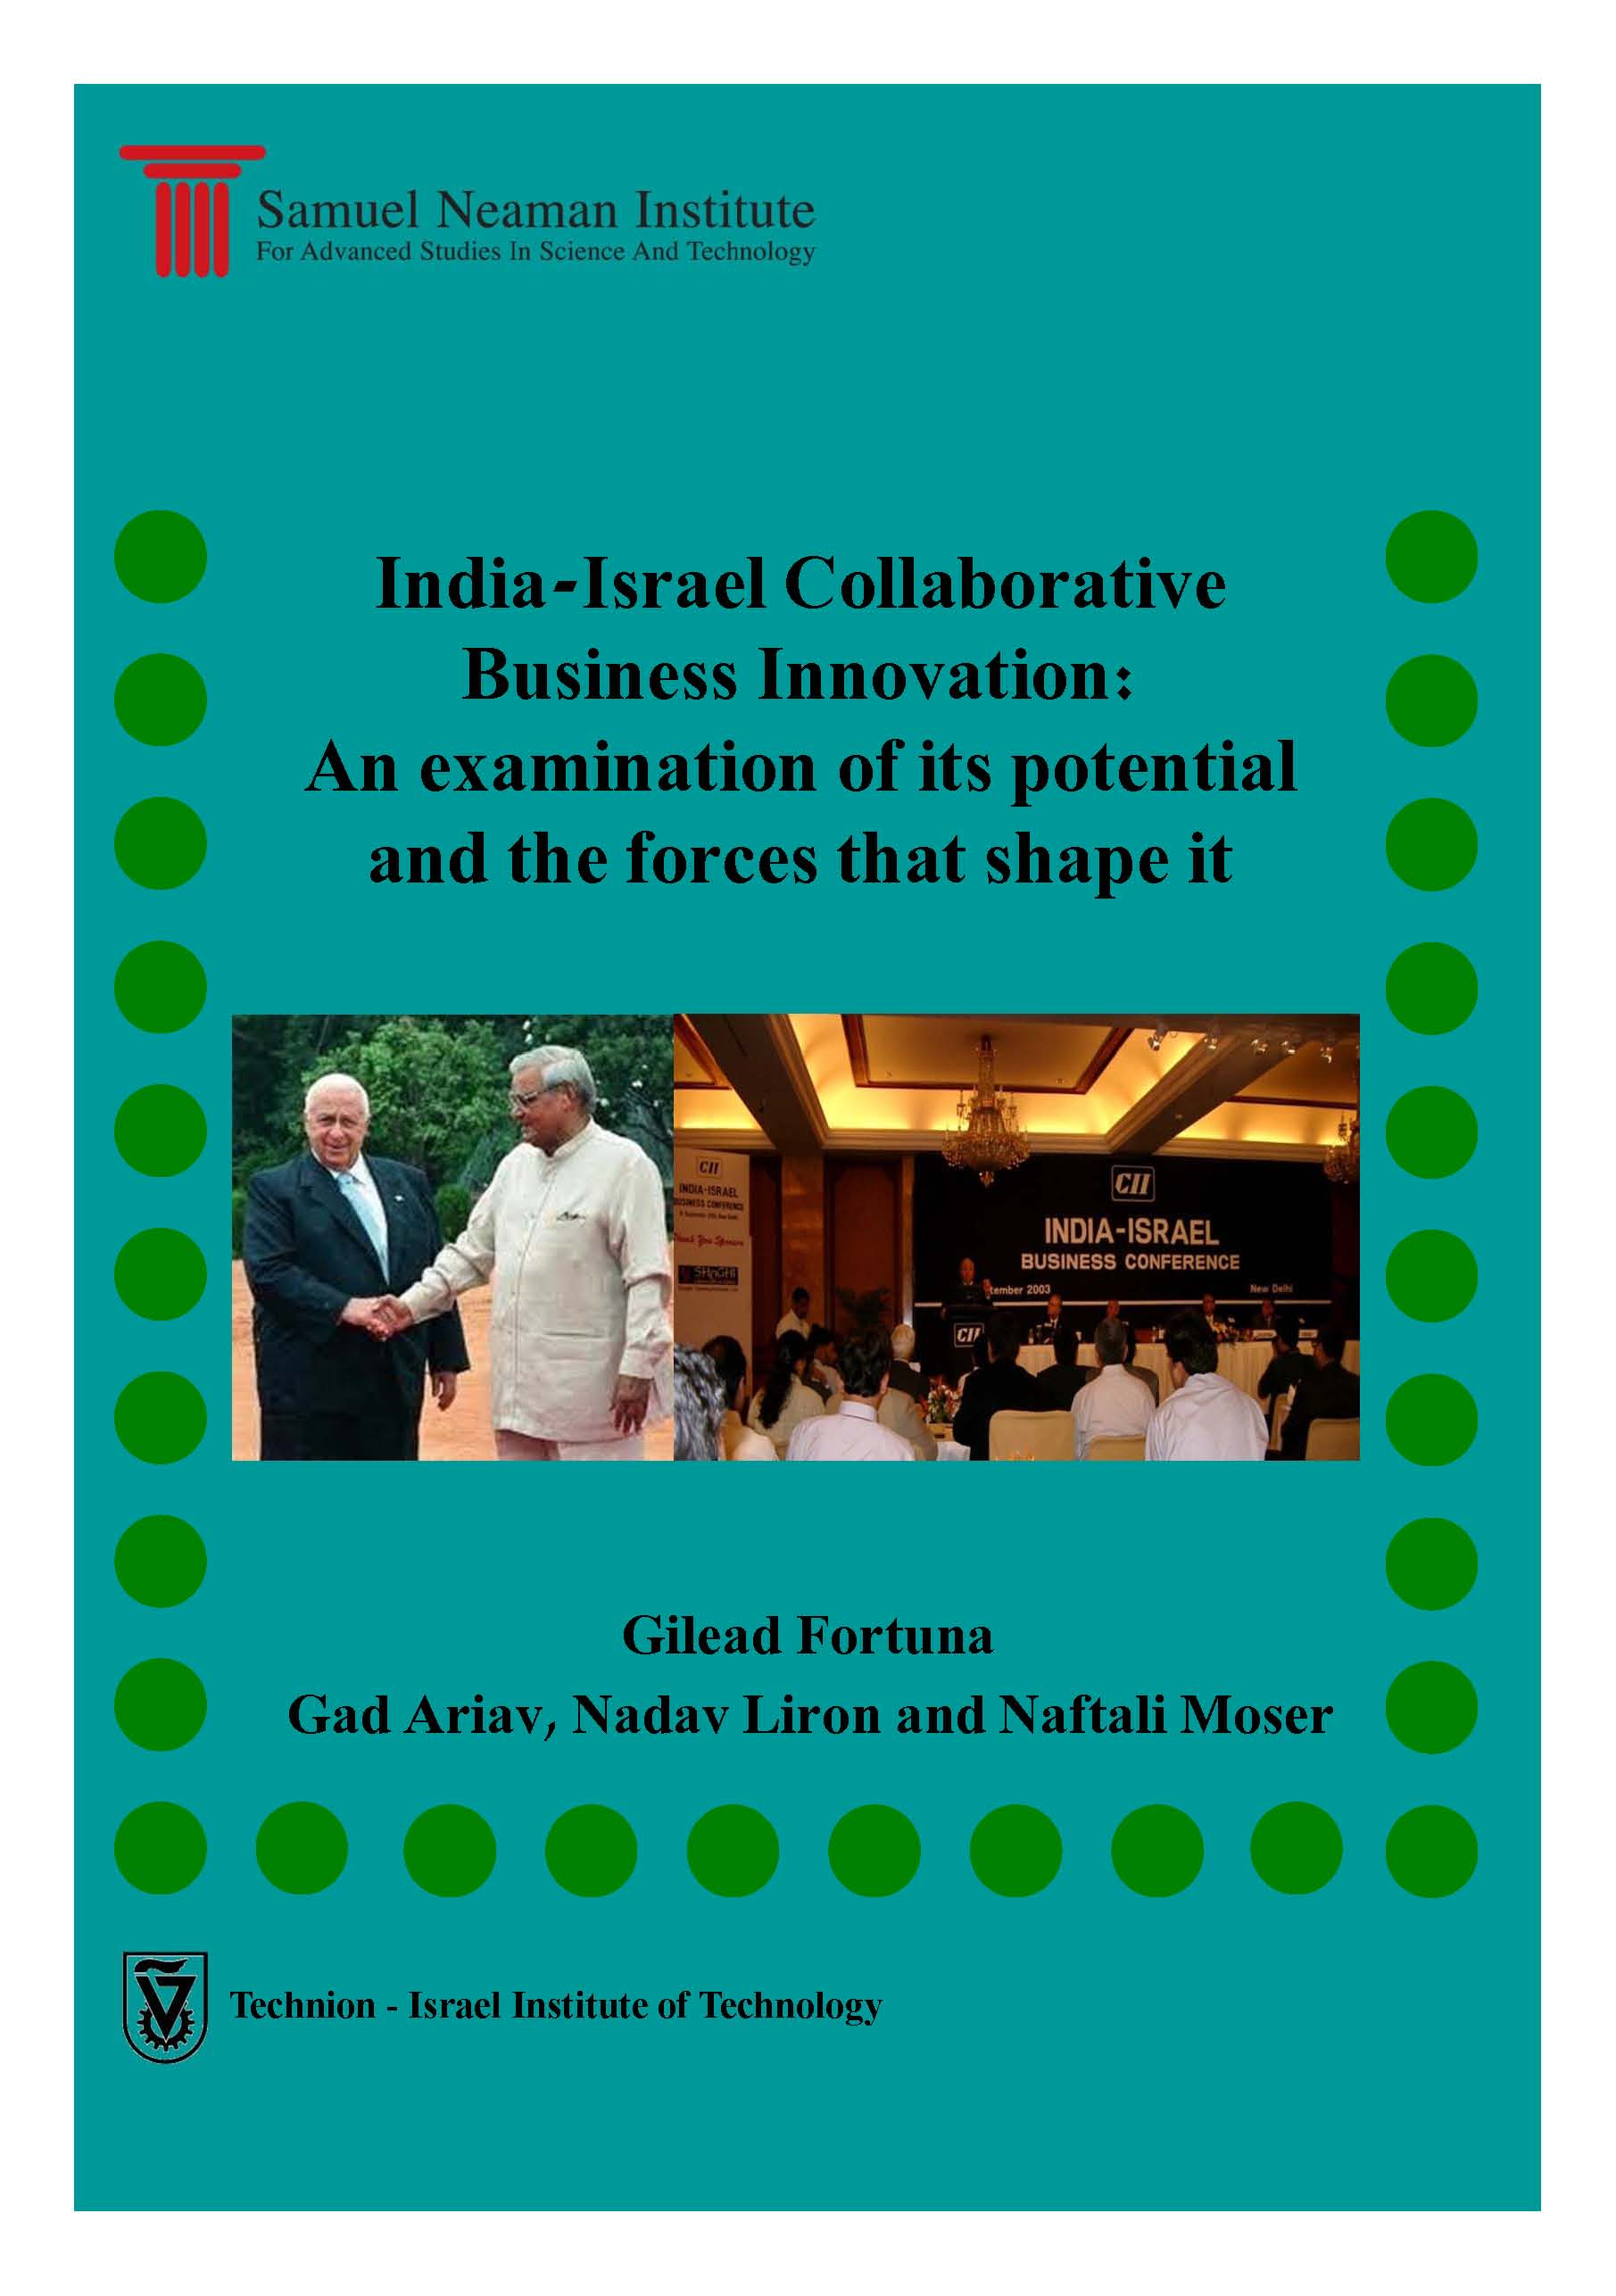 India-Israel Collaborative Business Innovation: An examination of its potential and forces that shape it